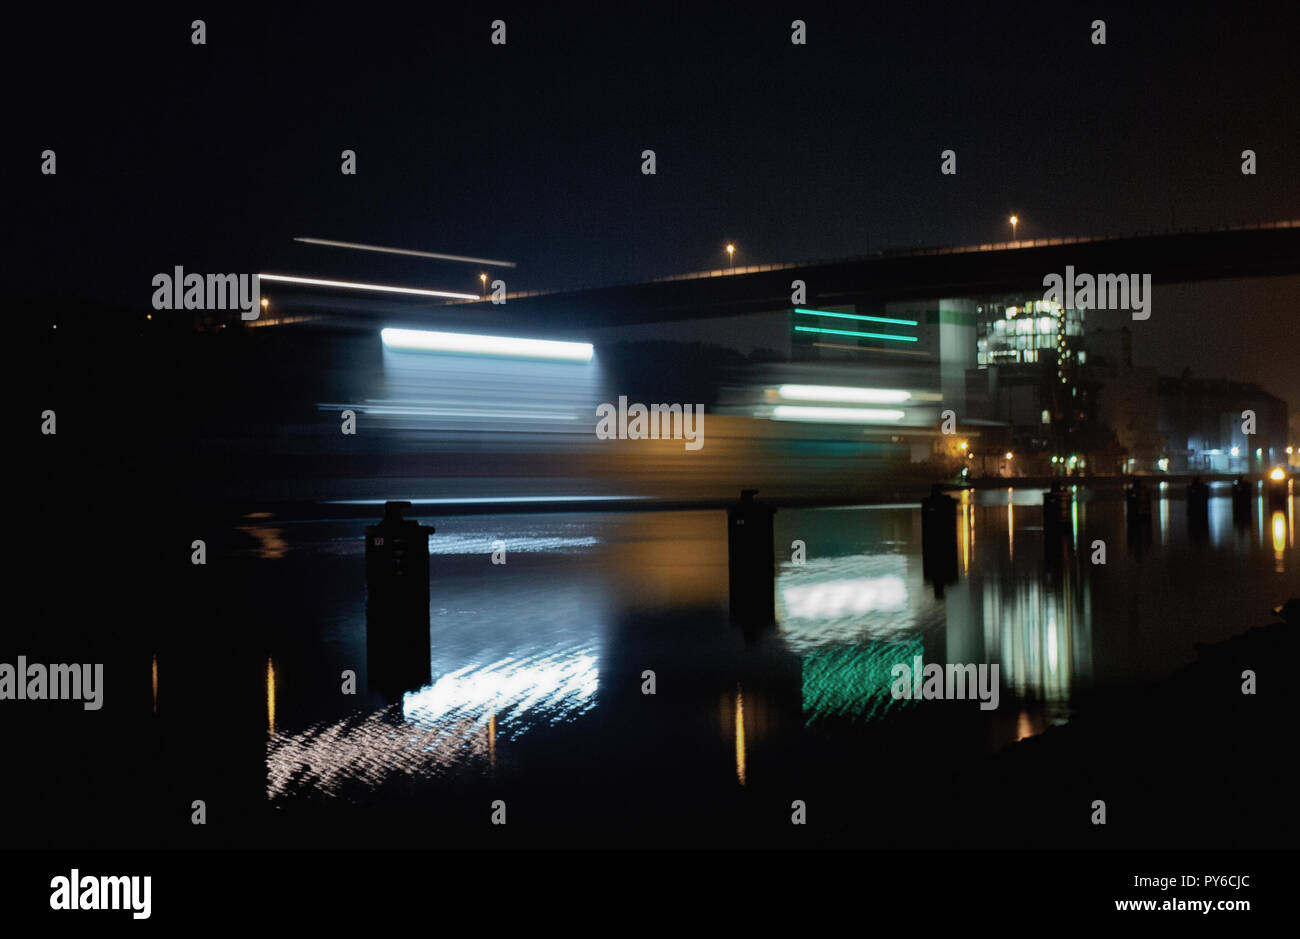 Light trails left by a ship on the canal at night that is heading towards the Olympia bridge Kiel-Holtenau. - Stock Image